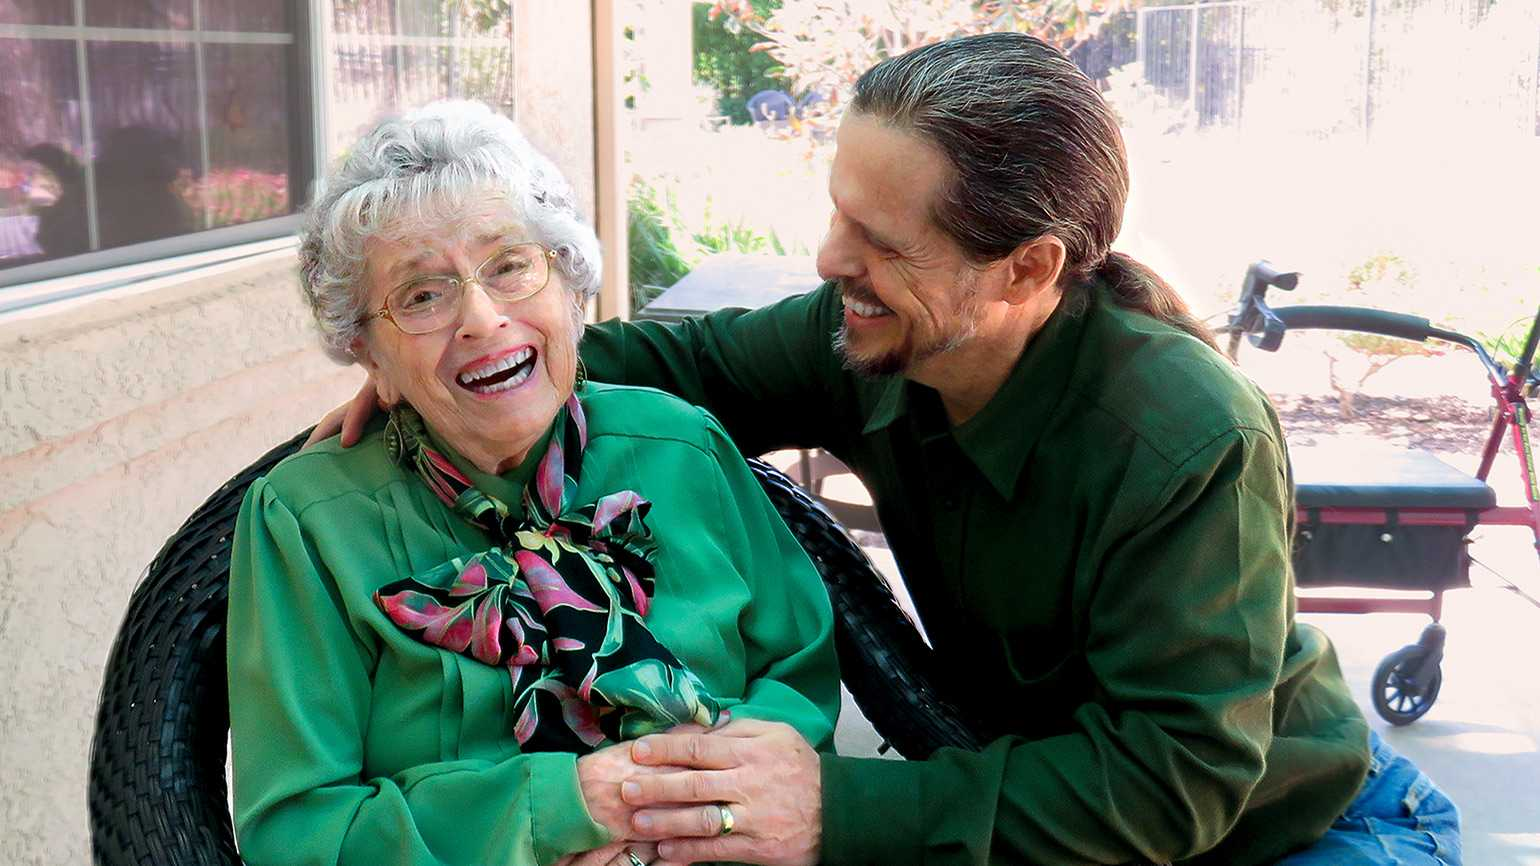 4 Tips for Caring for a Loved One with Alzheimer's Disease